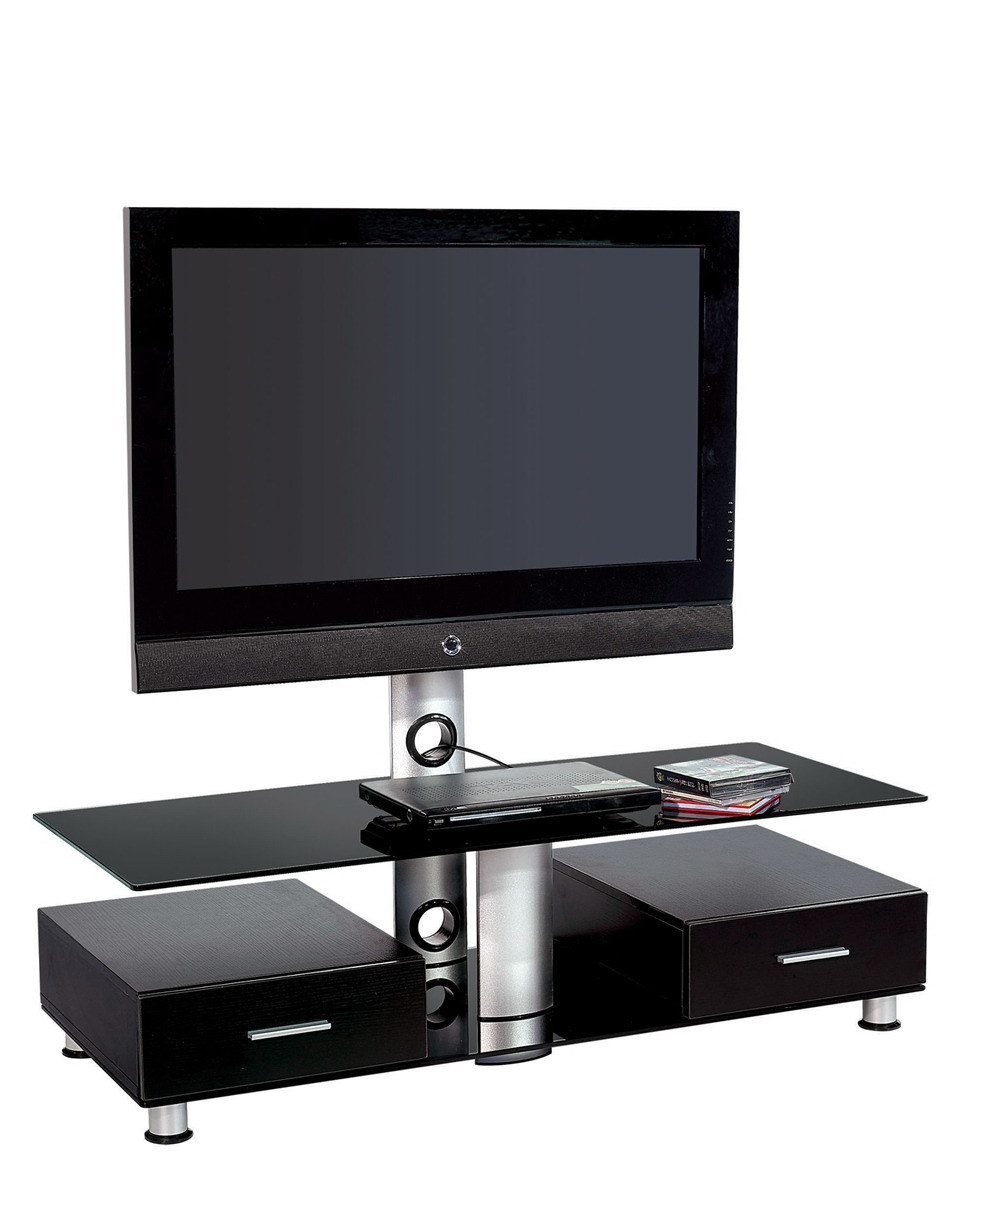 China tv stand wbv ts 003 china tv stand plasma tv stand - Tv stand ...